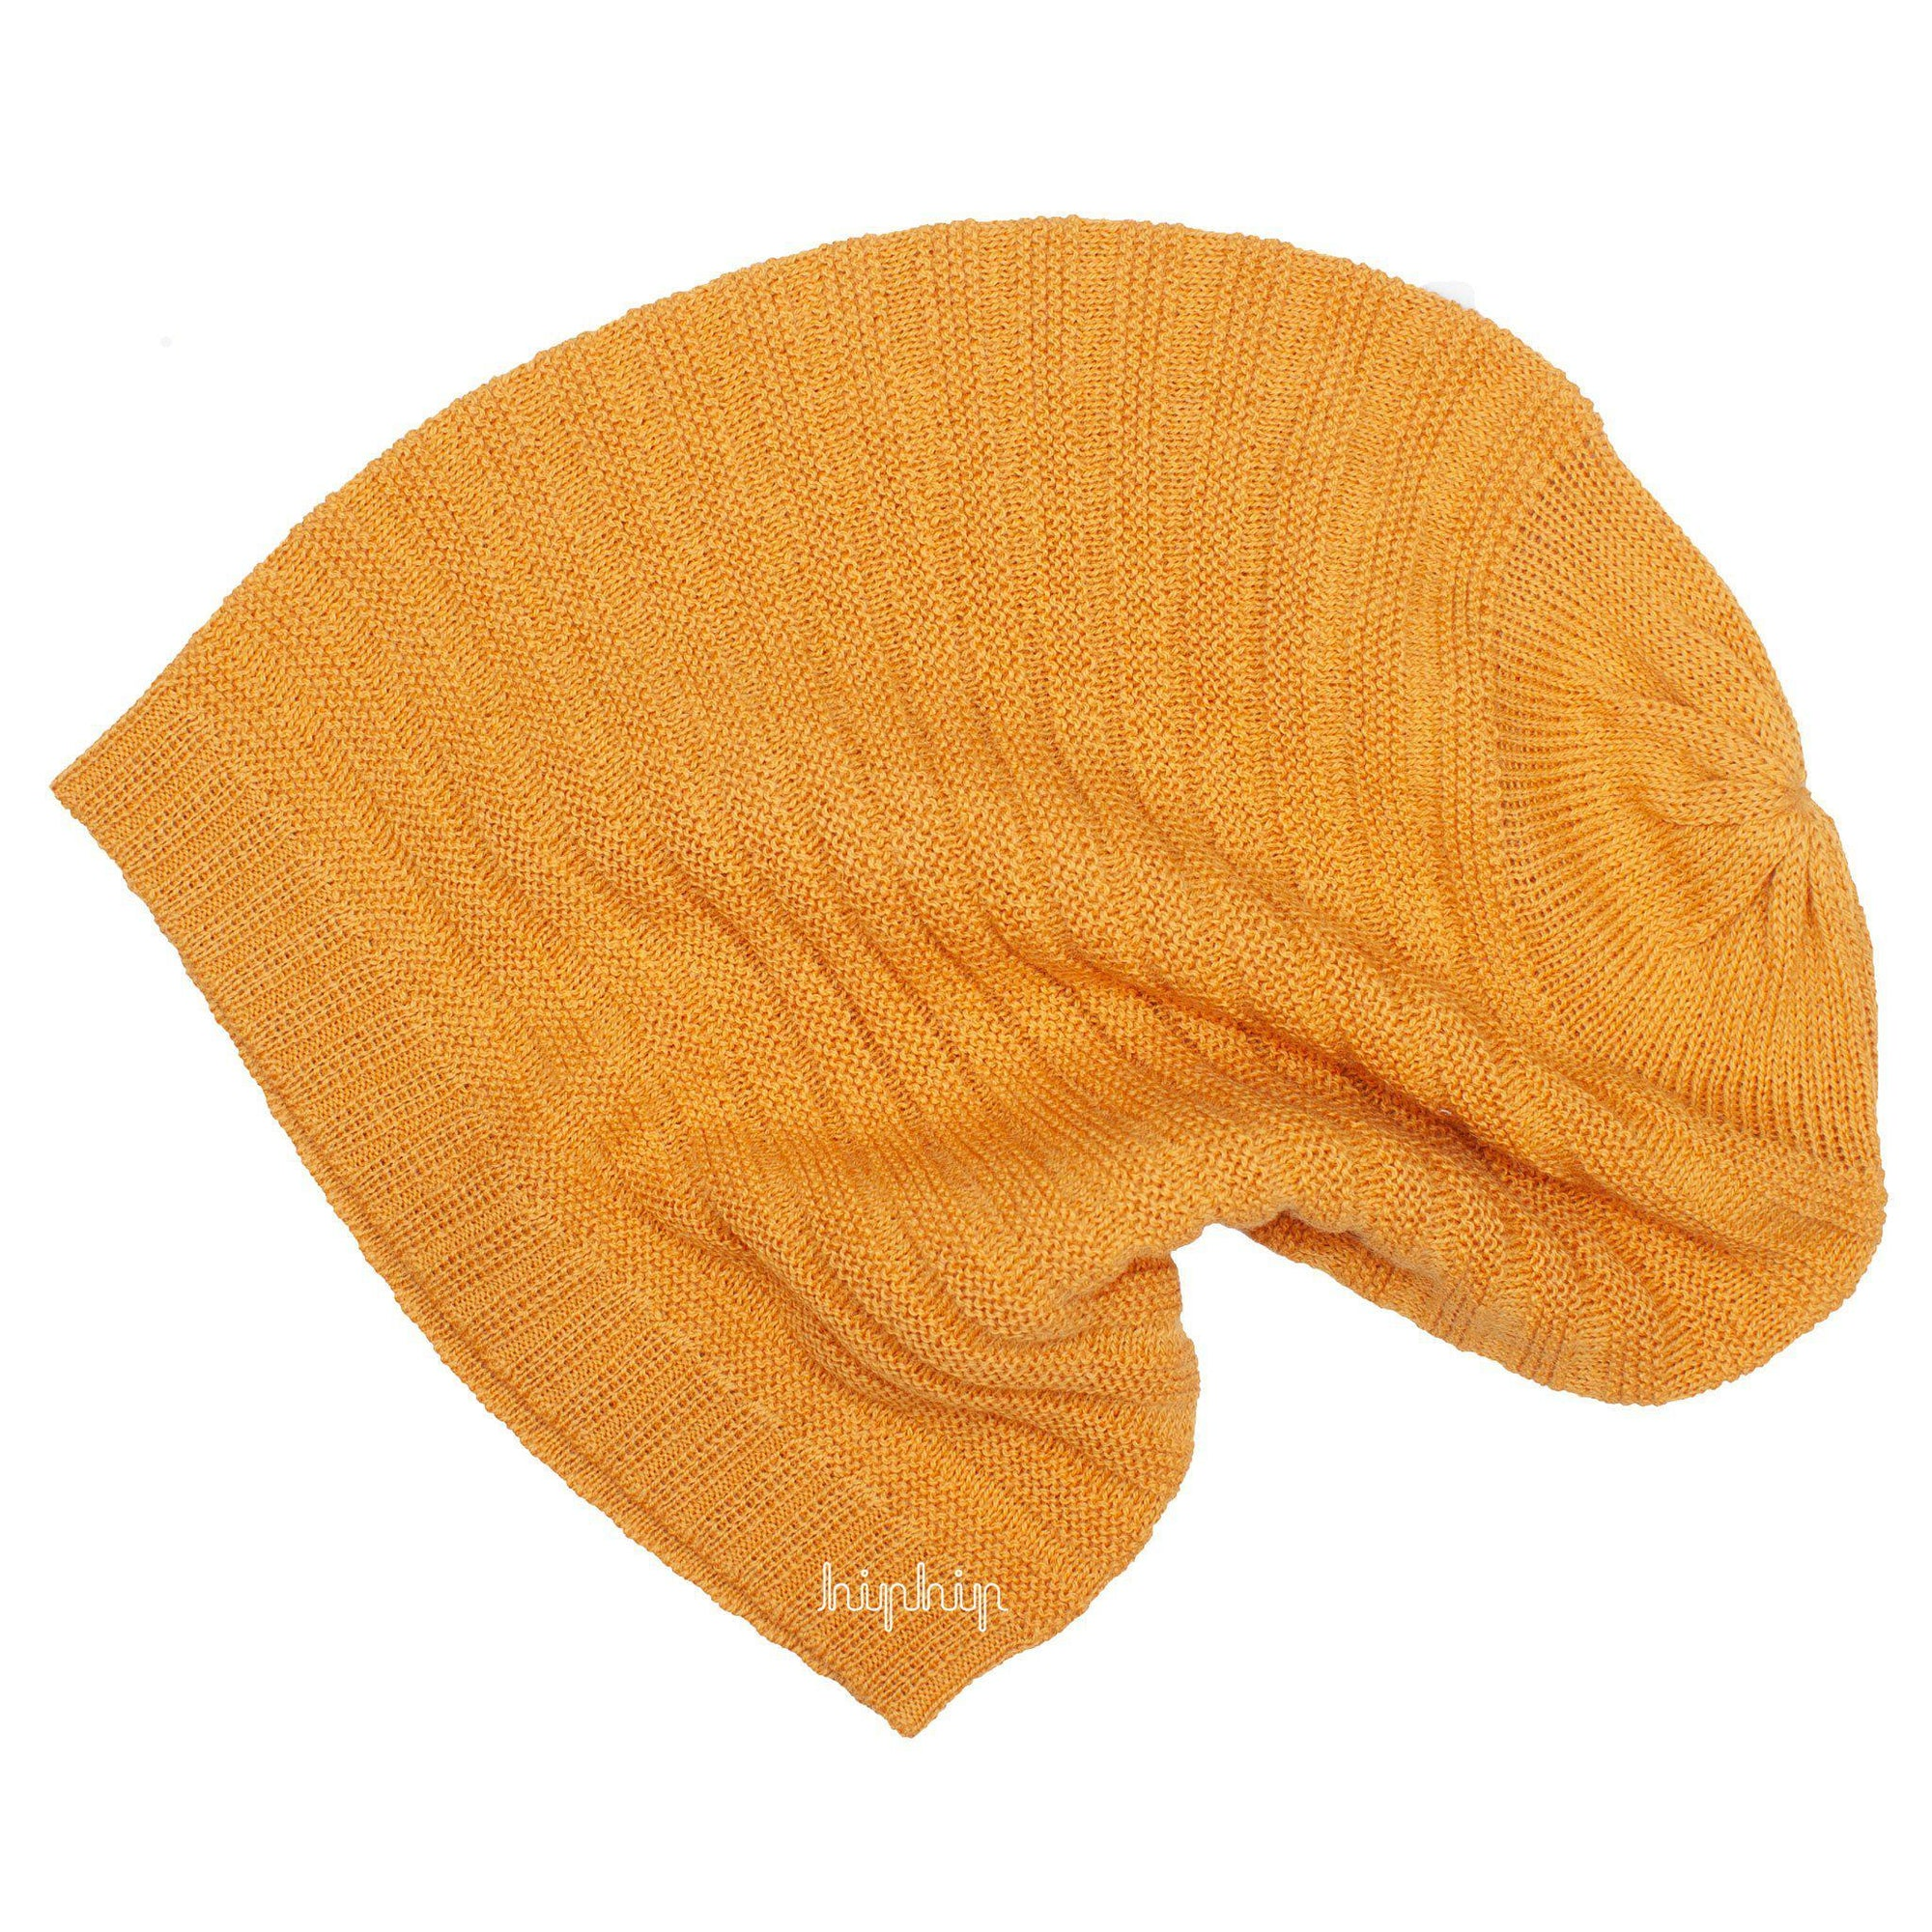 Caciula adulti De Colores baby alpaca - Corn Yellow-De Colores-HipHip.ro